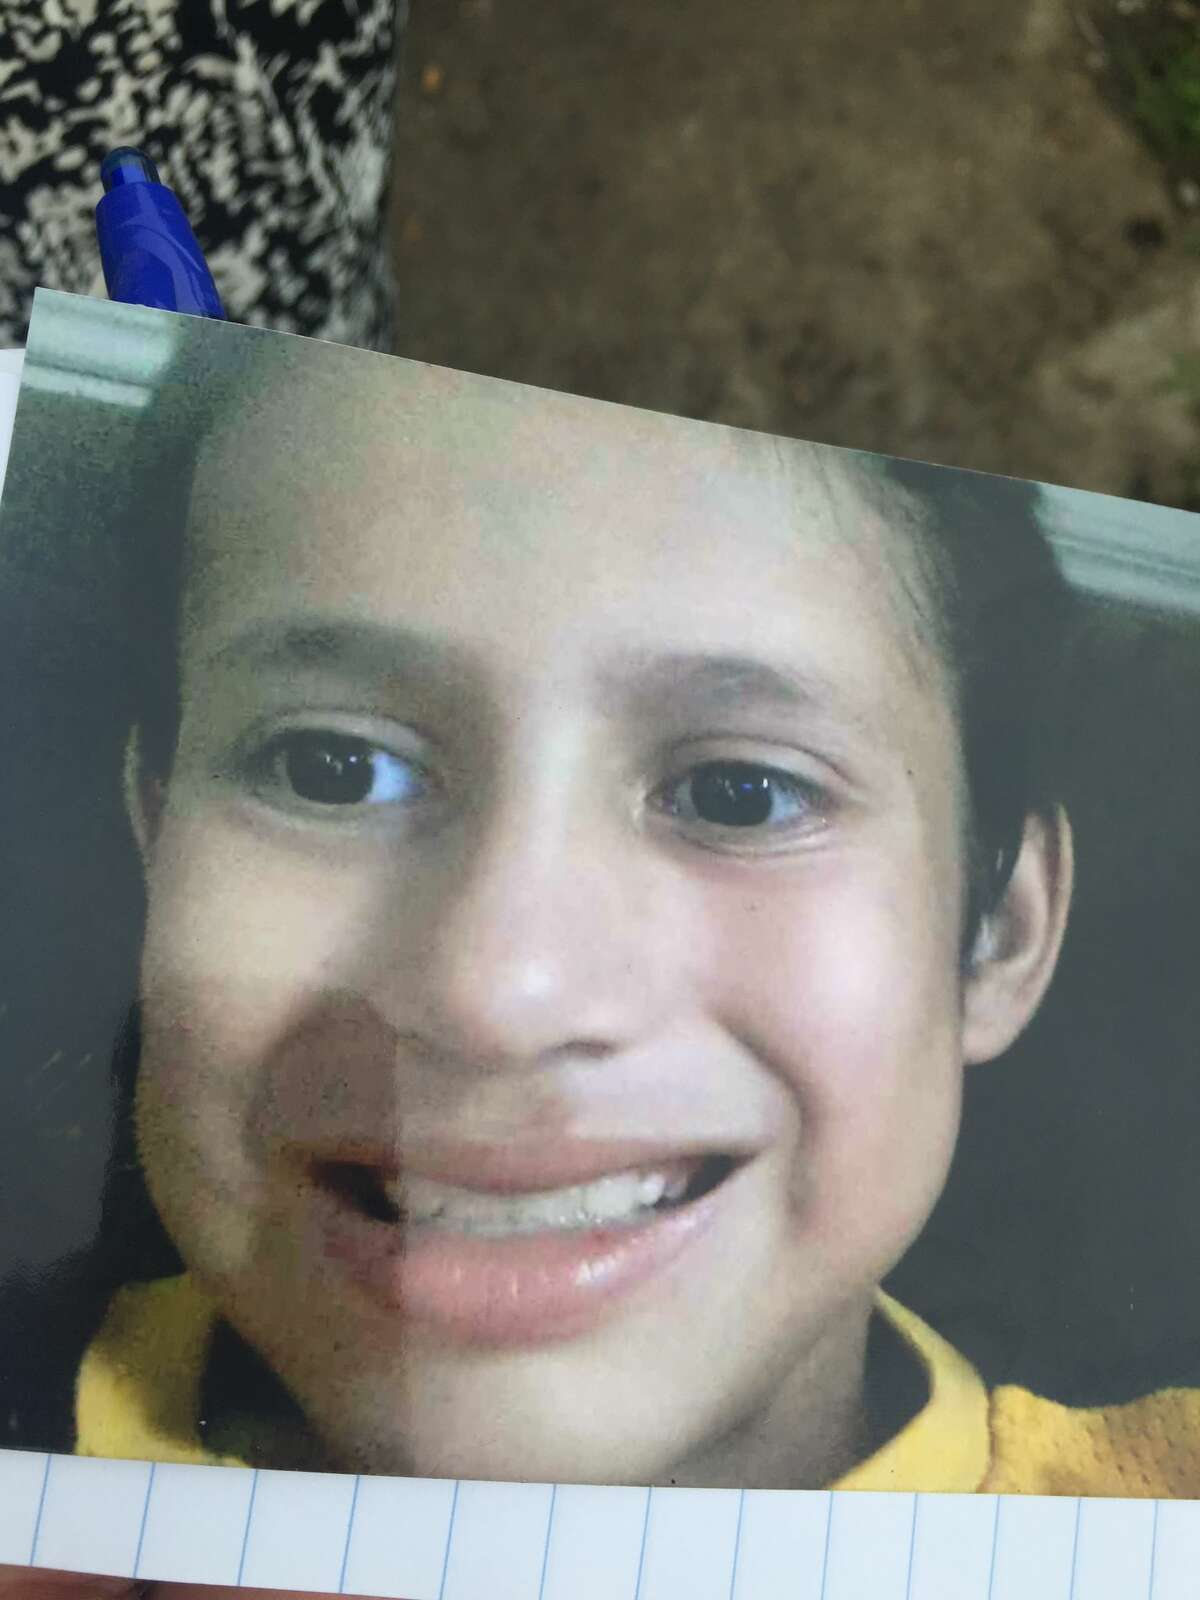 Josue Flores, 11, was stabbed to death about 4:45 p.m. May 17, 2016 in the 1900 block of Fulton on his way home from school.